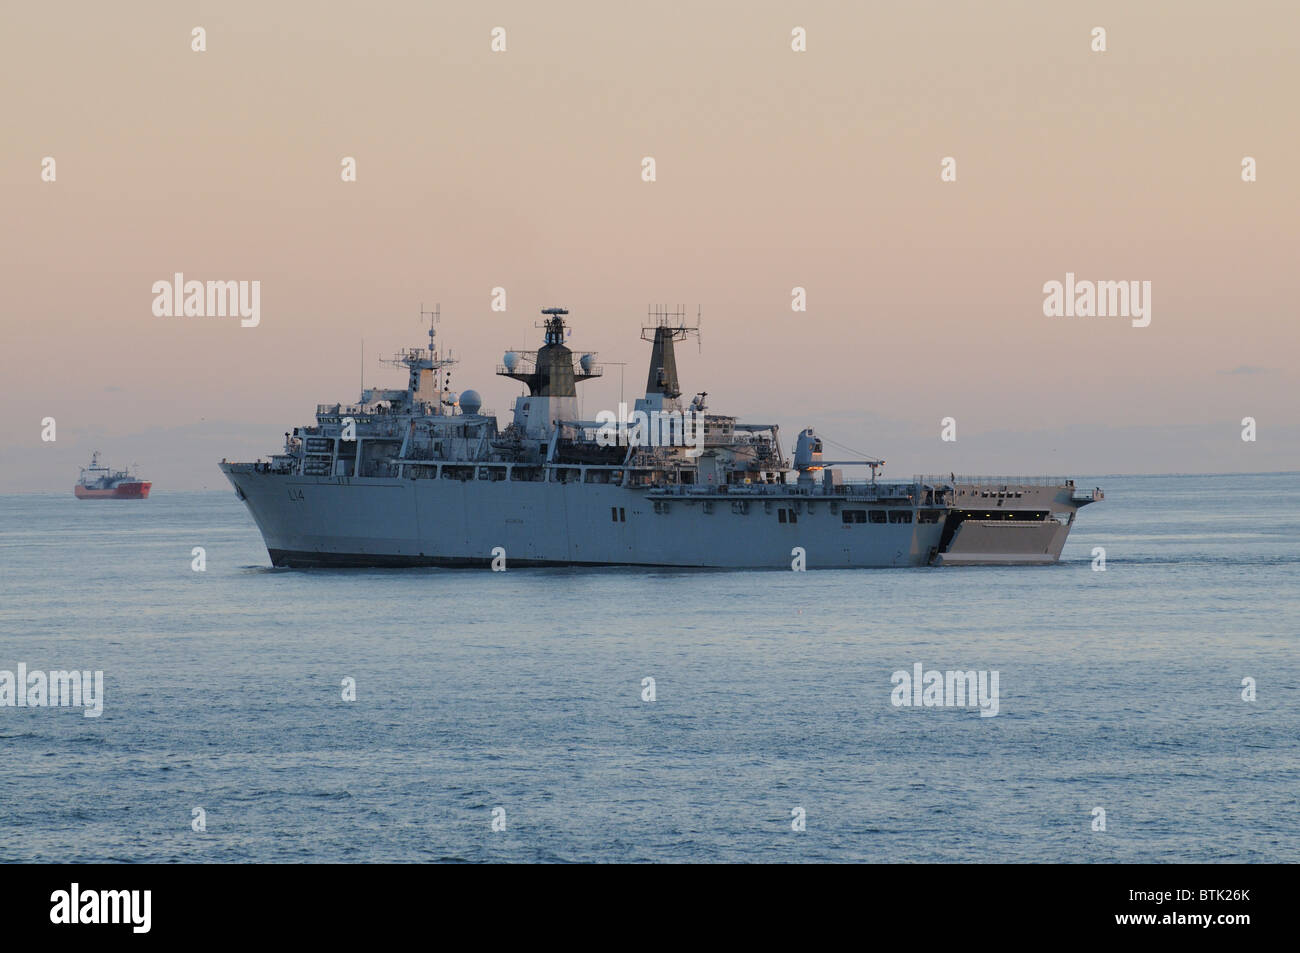 HMS Albion L14 outbound from Portsmouth England early evening light. The ship is a LPD Landing Platform Dock - Stock Image